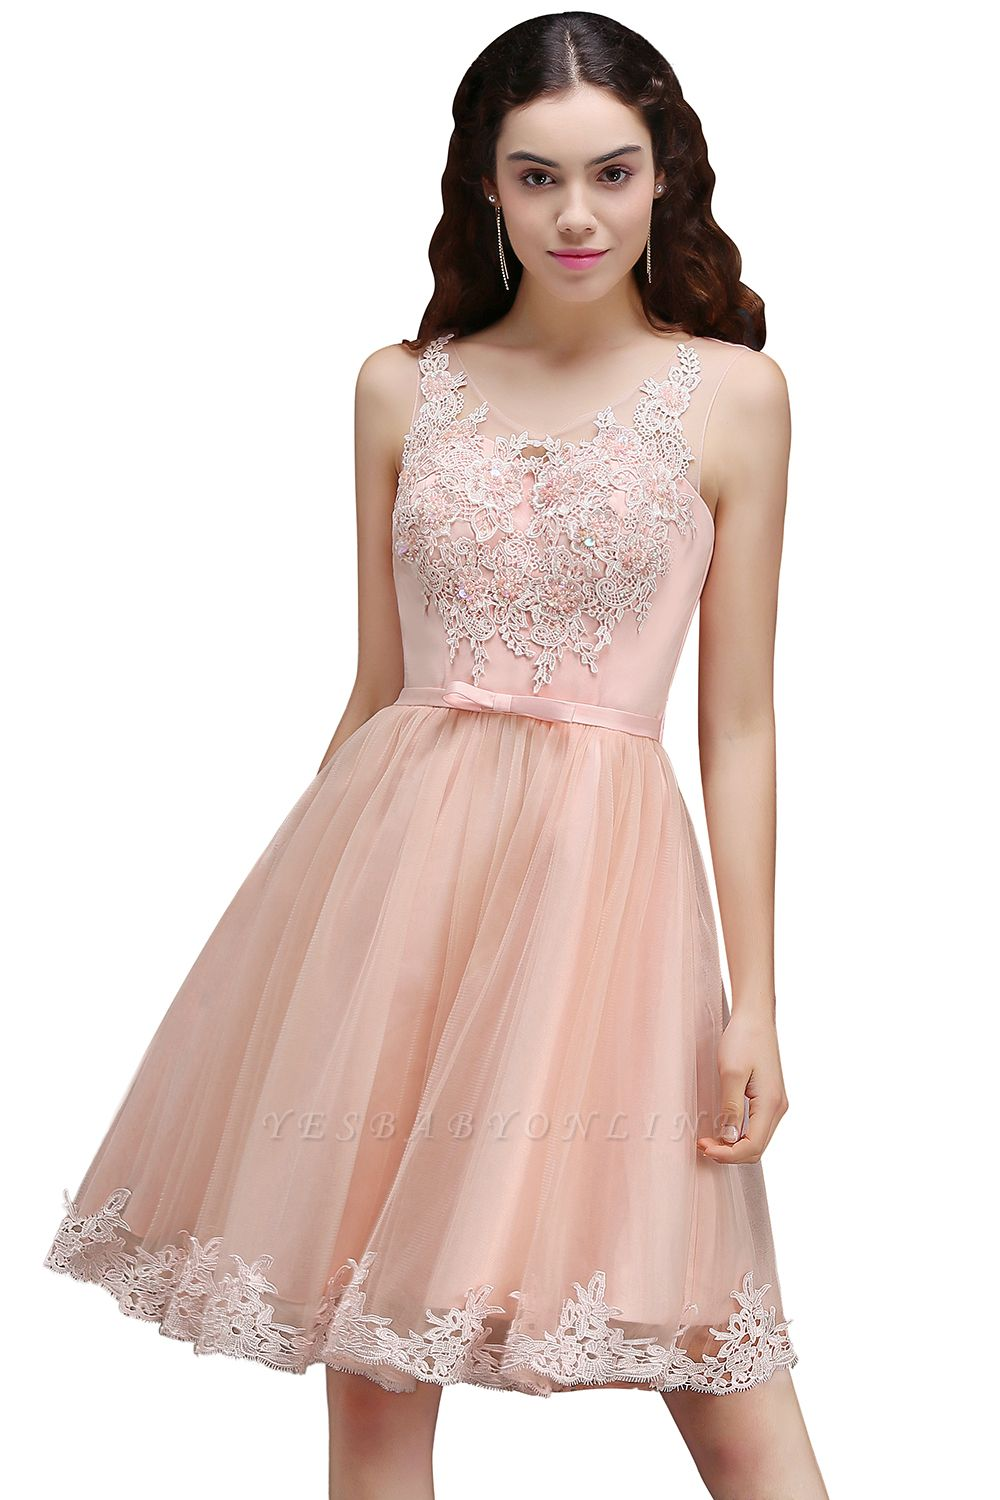 ANIYAH | A-line Short Cute Homecoming Dress With Lace